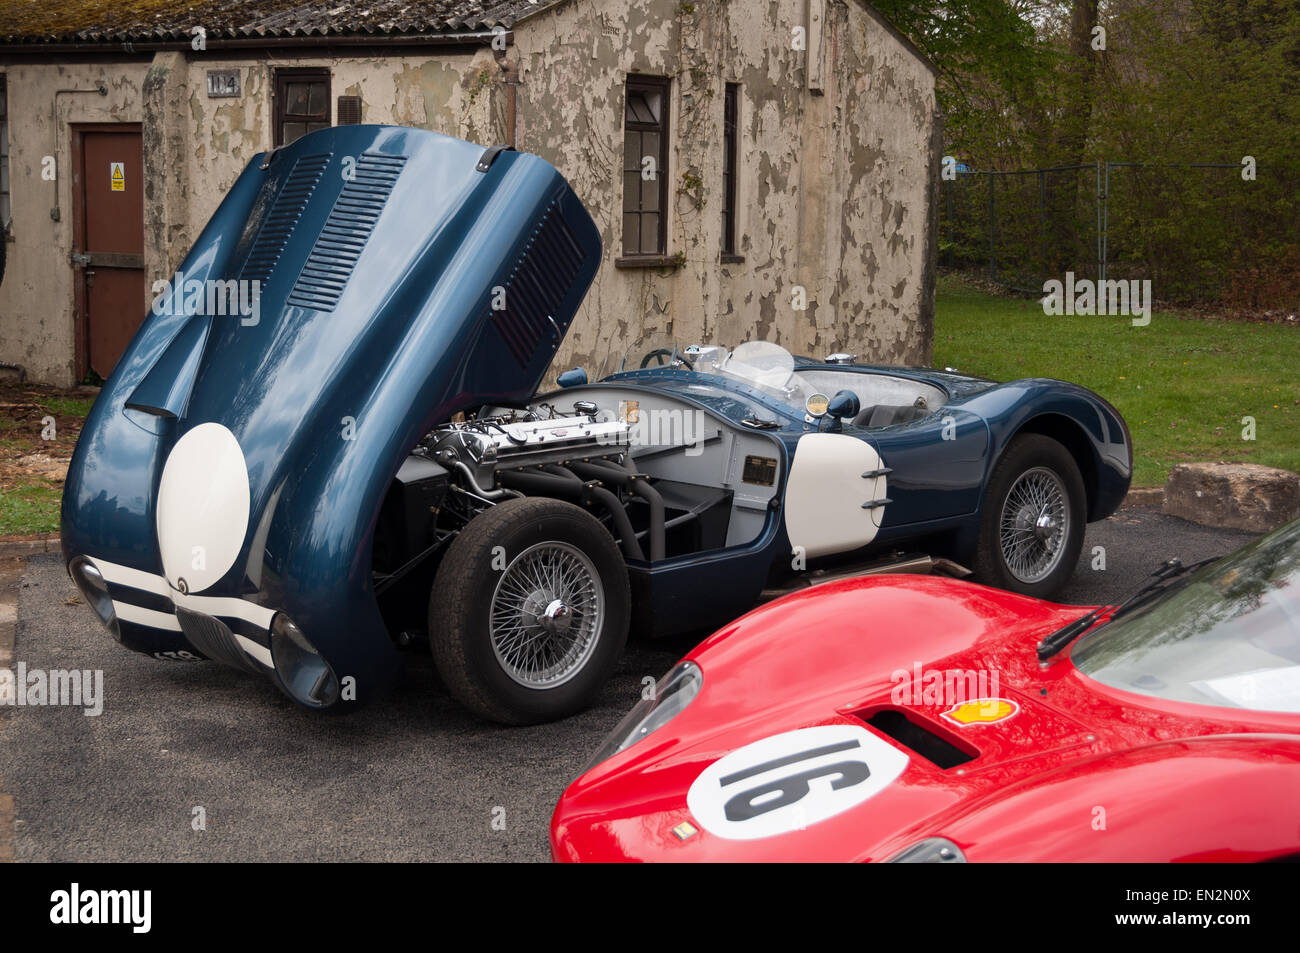 Sunday Car Stock Photos Images Alamy Circuit Map For Bromyard Speed Festival Vintage Jaguar Sport At The 5th Brunch Scramble In Bicester Heritage Oxfordshire